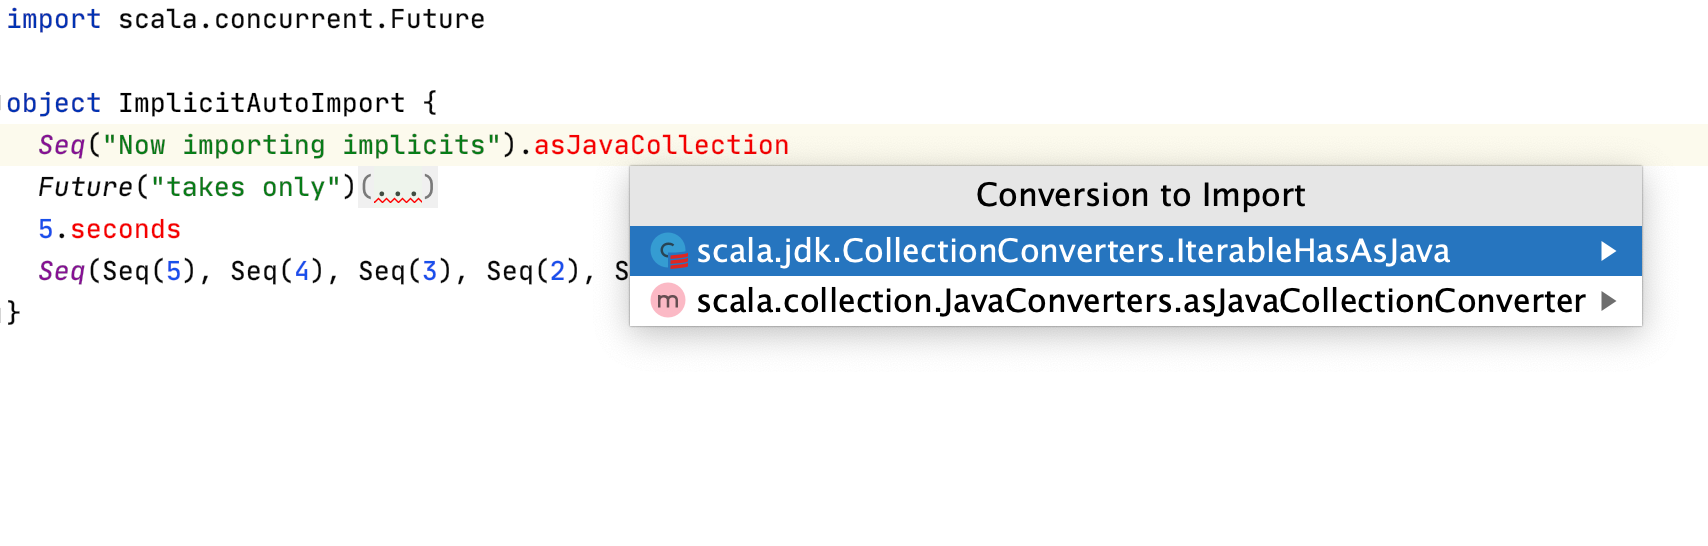 Intention action for the implicit conversions auto-import